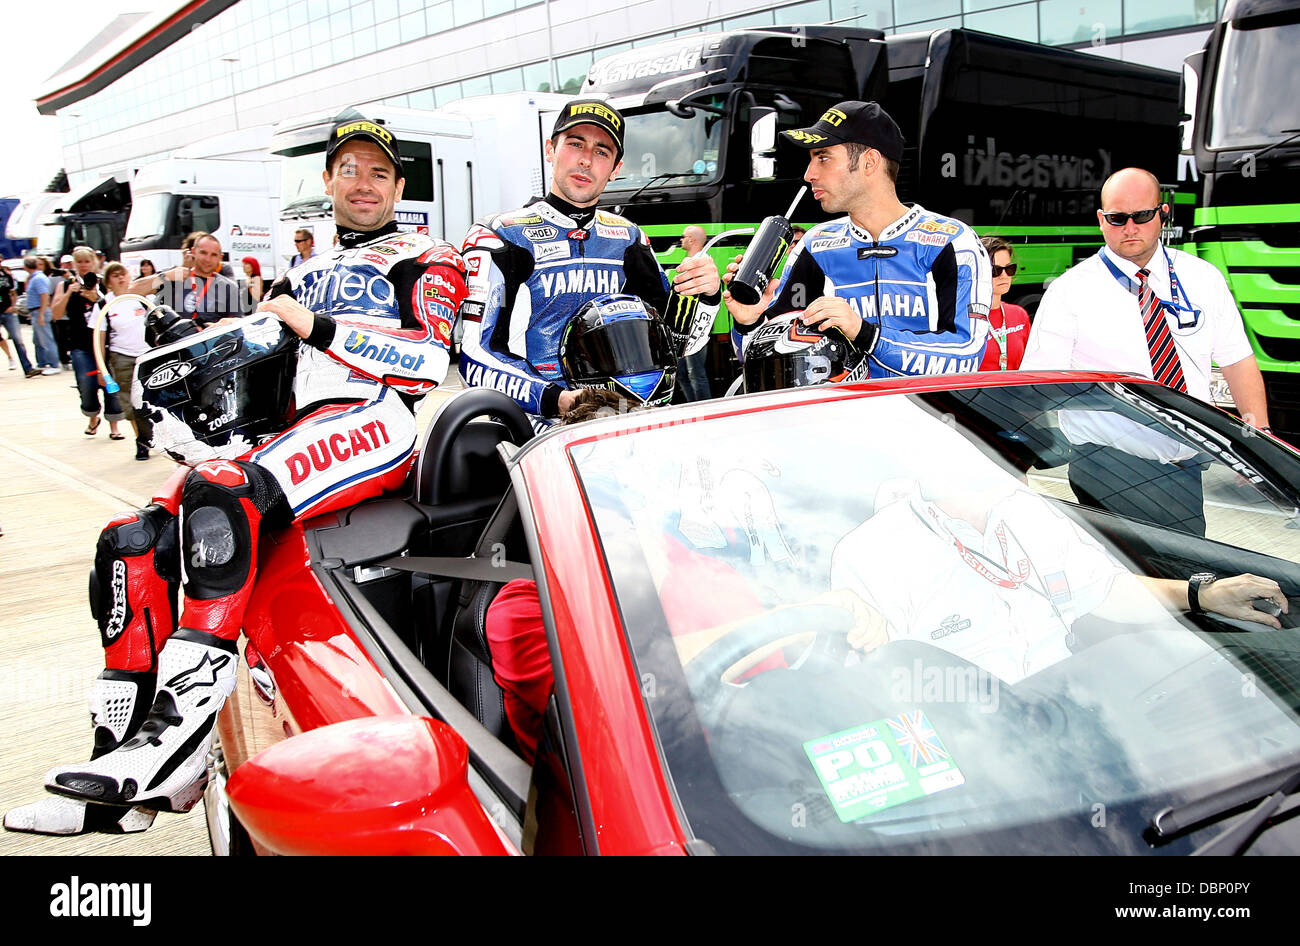 Carlos Checa (1st place) Eugene Laverty (2nd) and Marco Melandri (3rd)  The World Superbikes at Silverstone Silverstone, - Stock Image